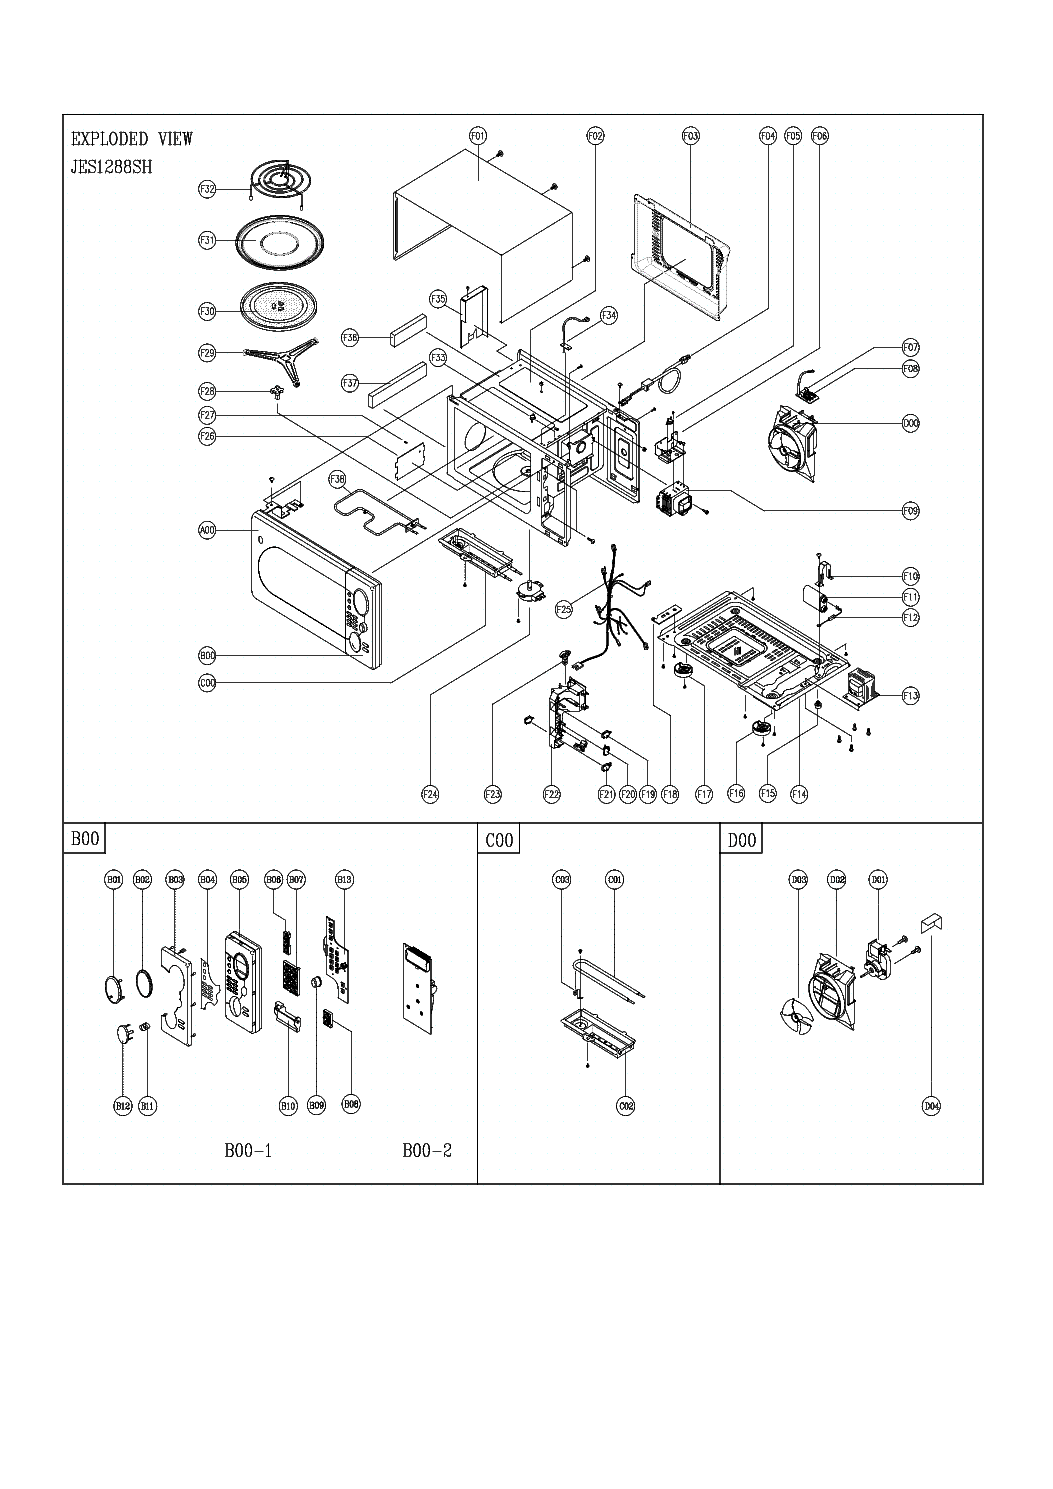 DAEWOO MODULE-DPM001 Service Manual free download